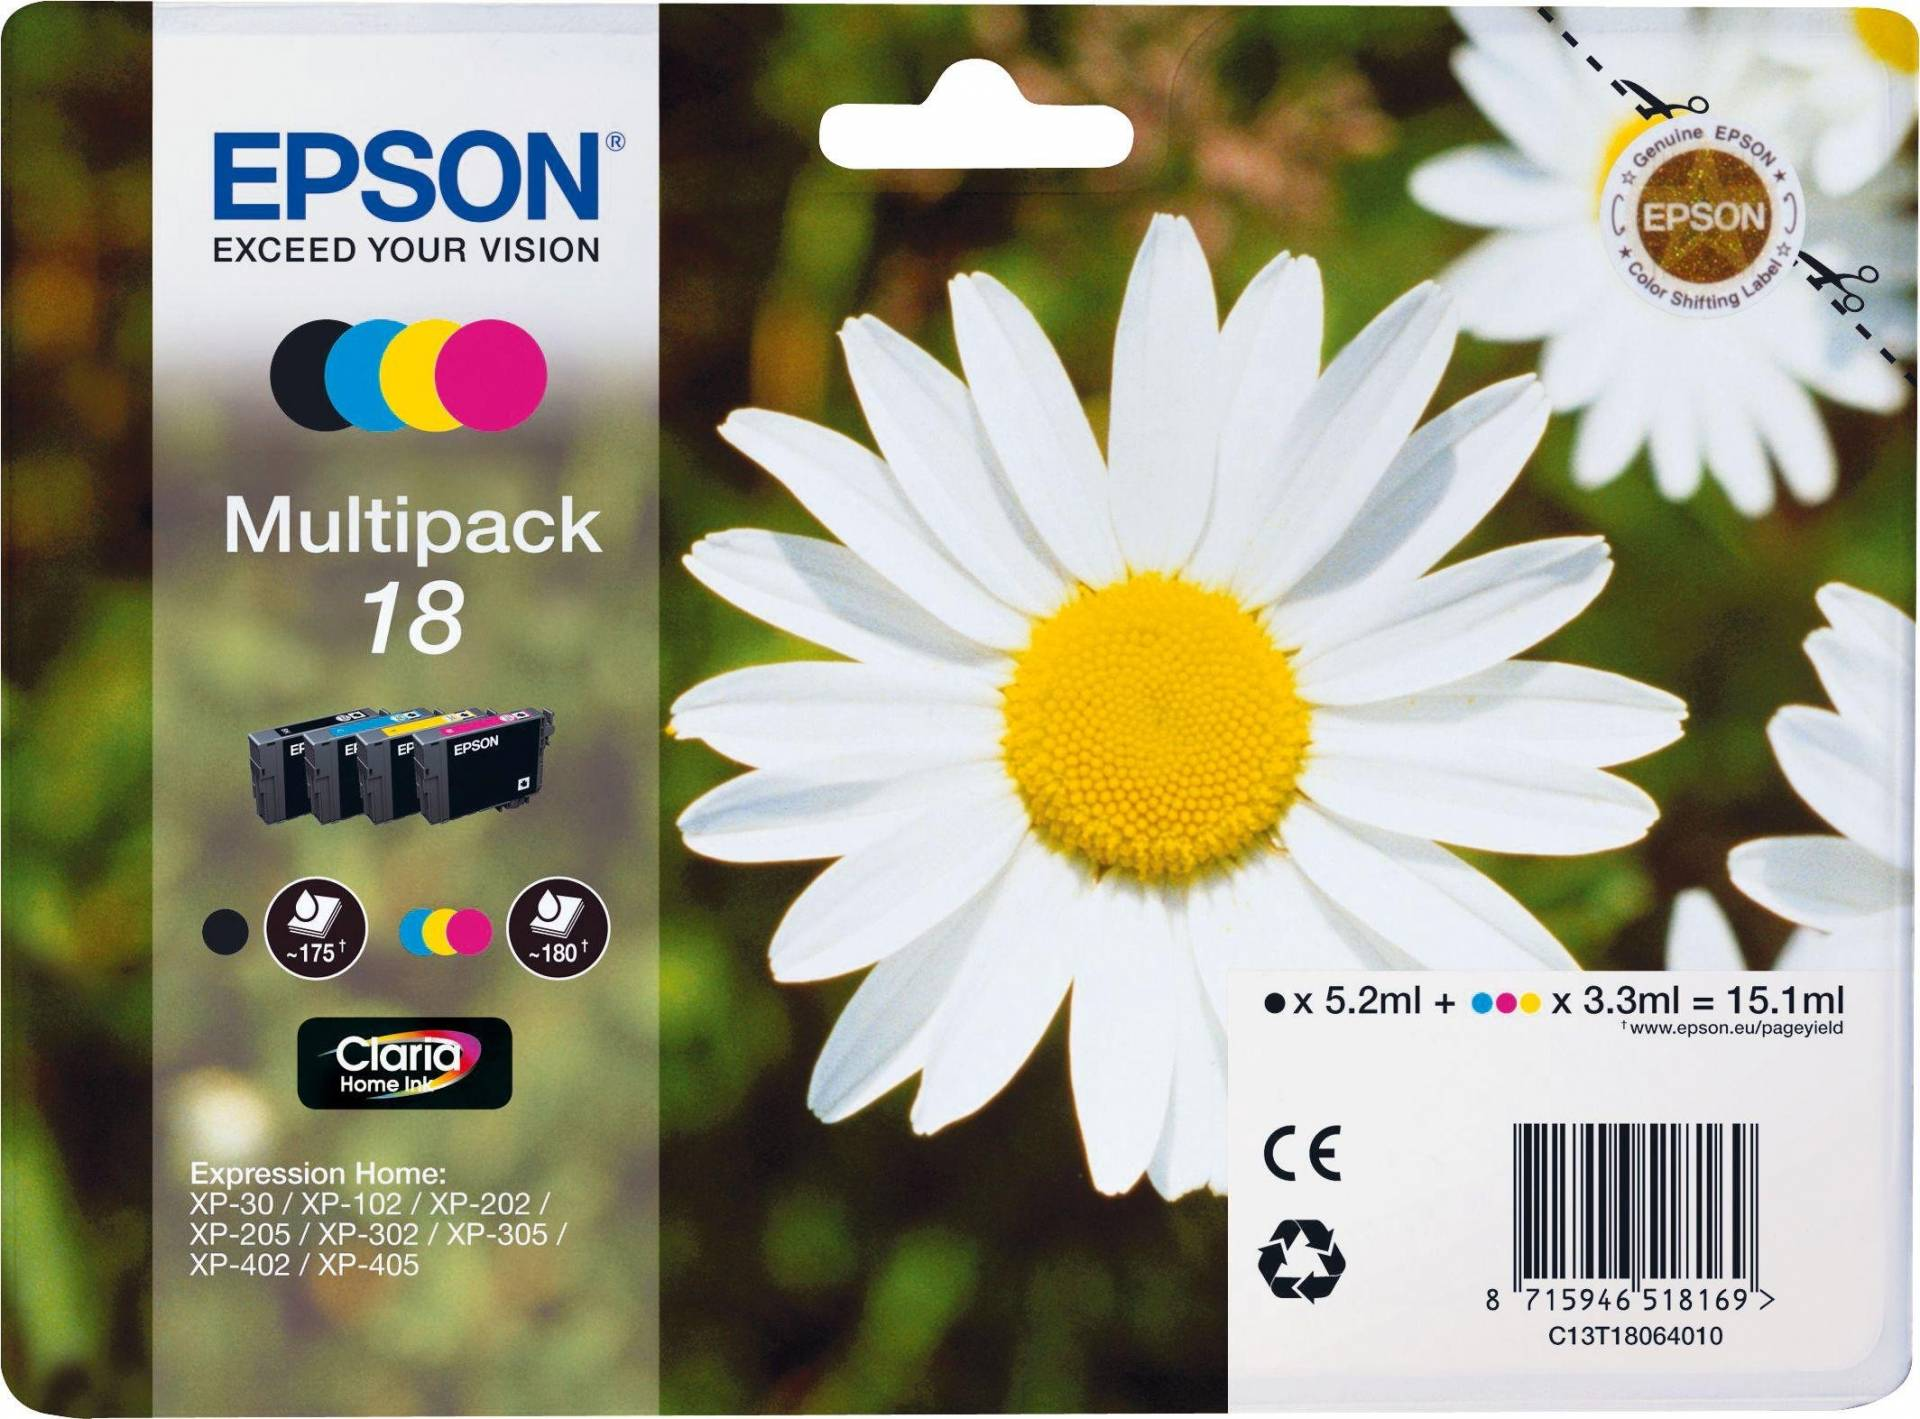 Epson Daisy 18 Ink Cartridges Multipack from Epson